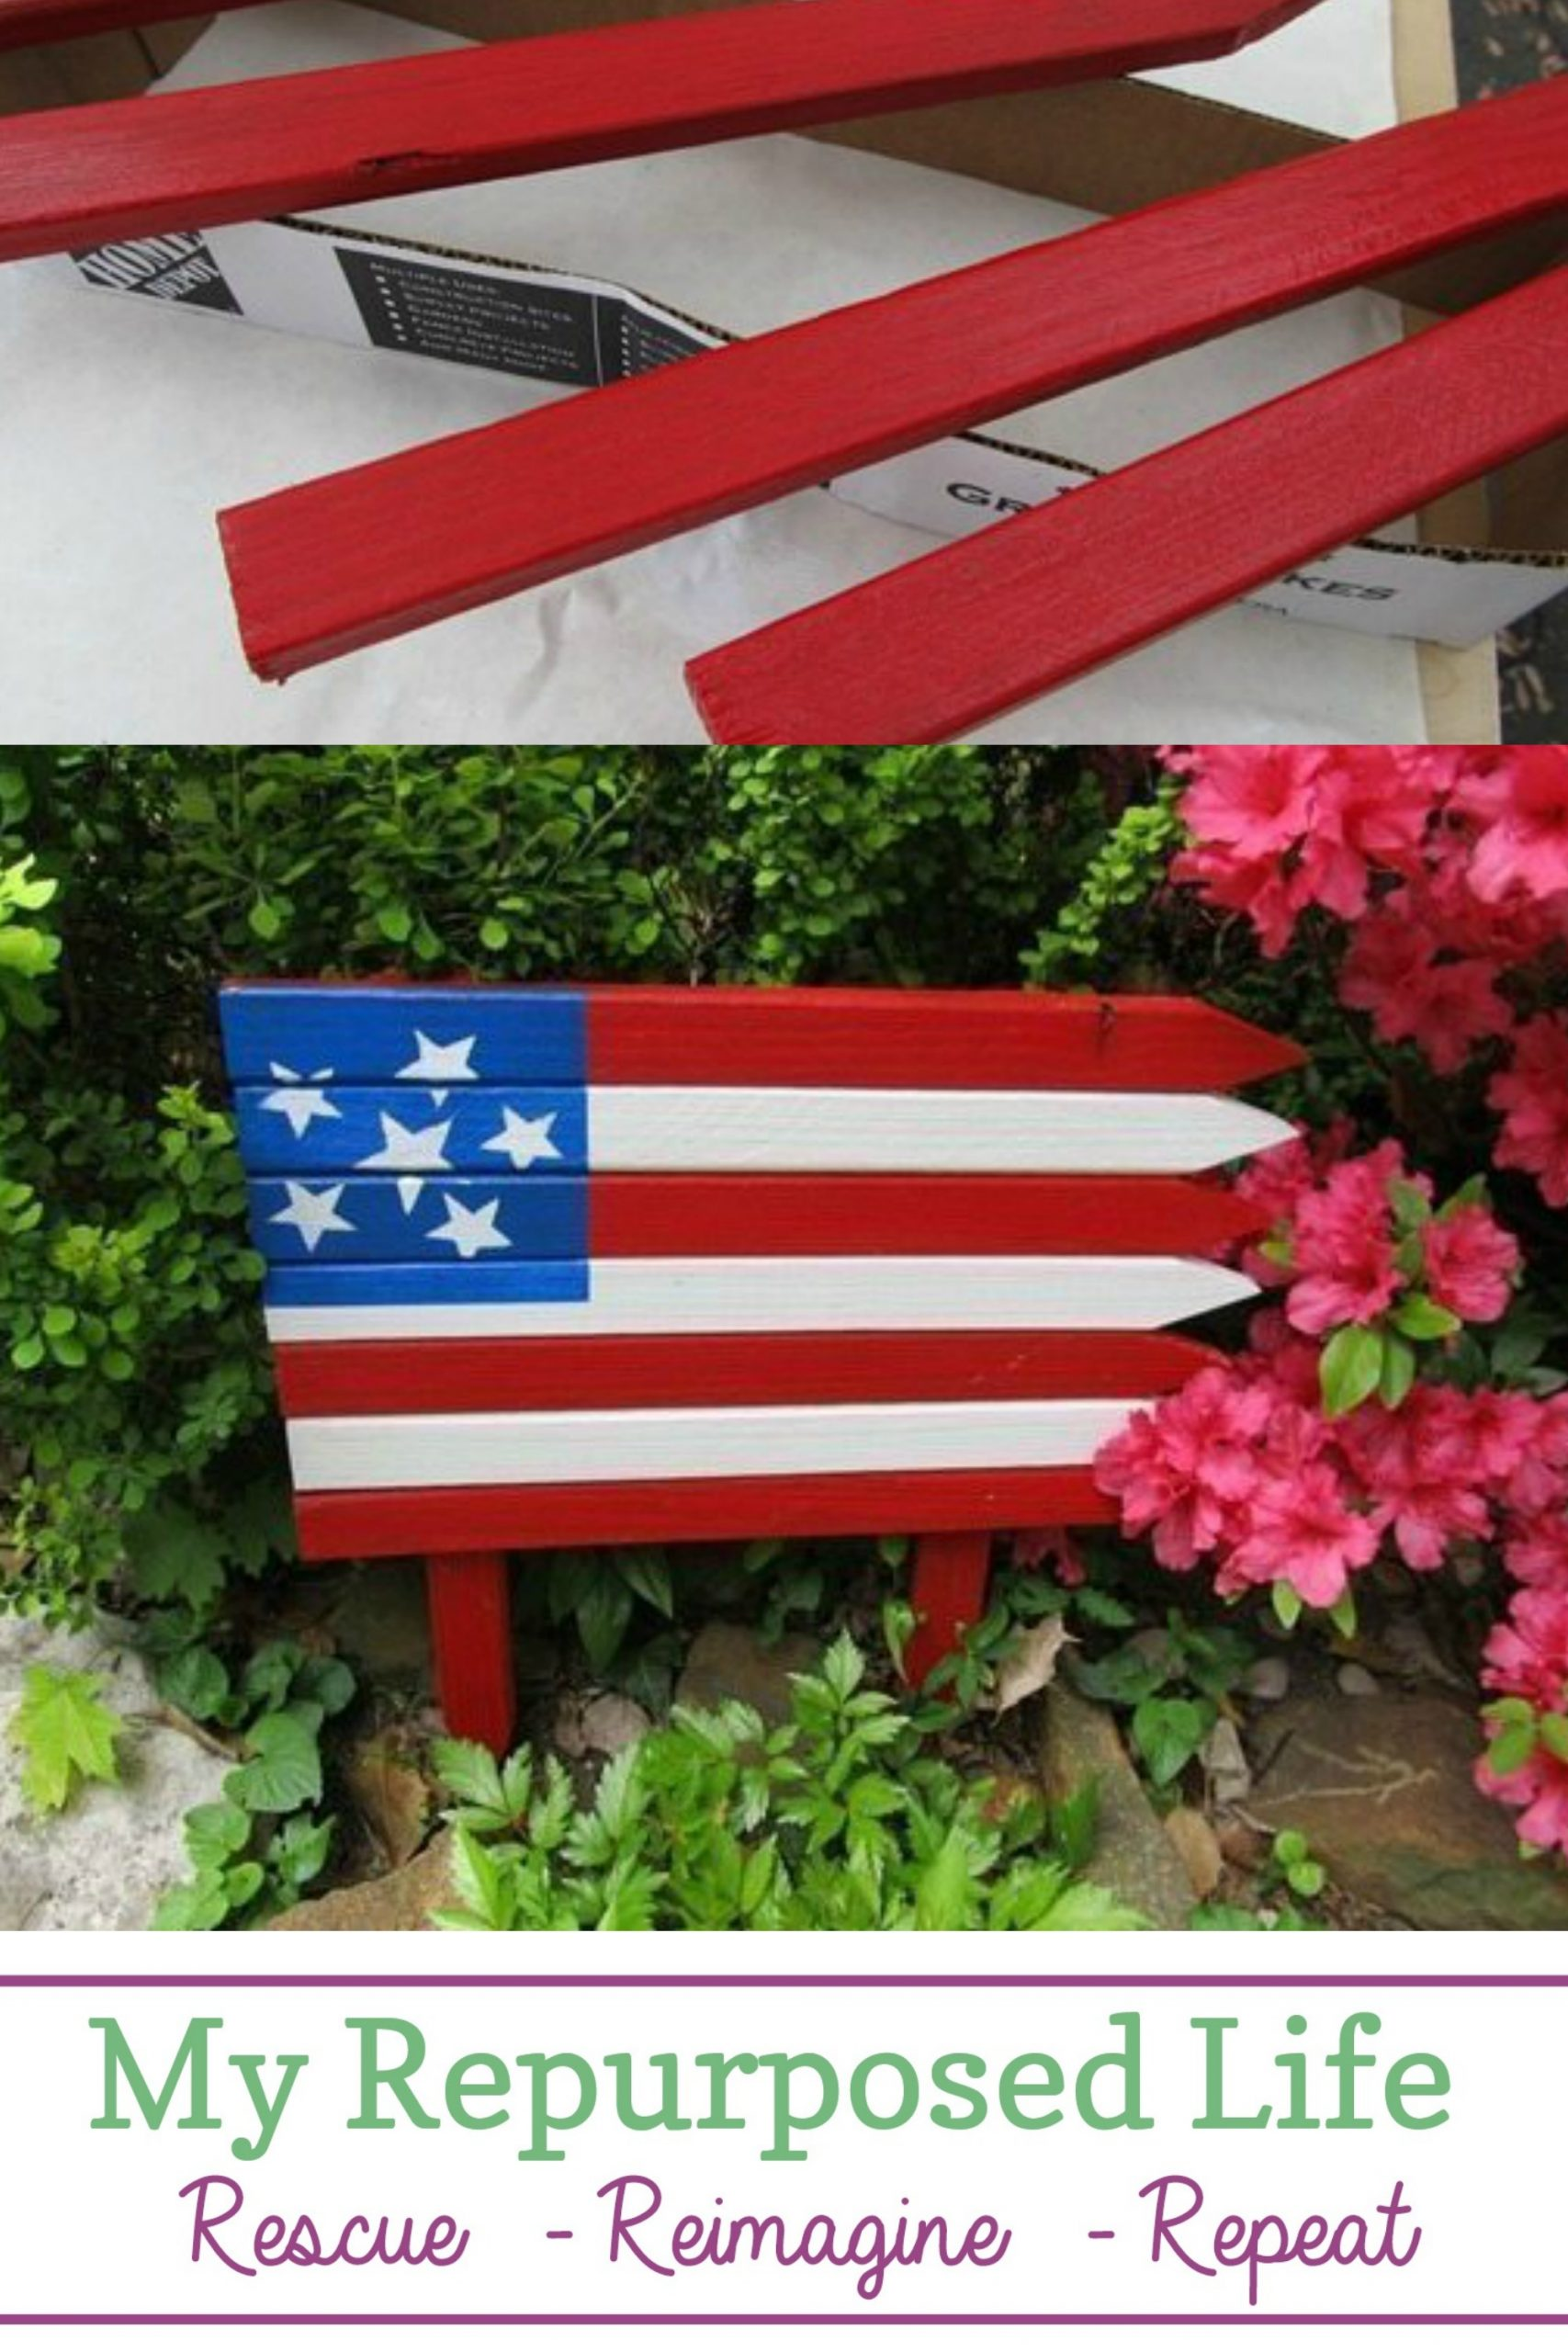 How to make an easy wooden Americana flag for your patio or flower garden. This flag is a quick and easy project using small garden stakes. Great afternoon project to make with the kids for a patriotic holiday celebration. #repurposed #MyRepurposedLife #4thofjuly #patriotic #flag #garden #decor via @repurposedlife